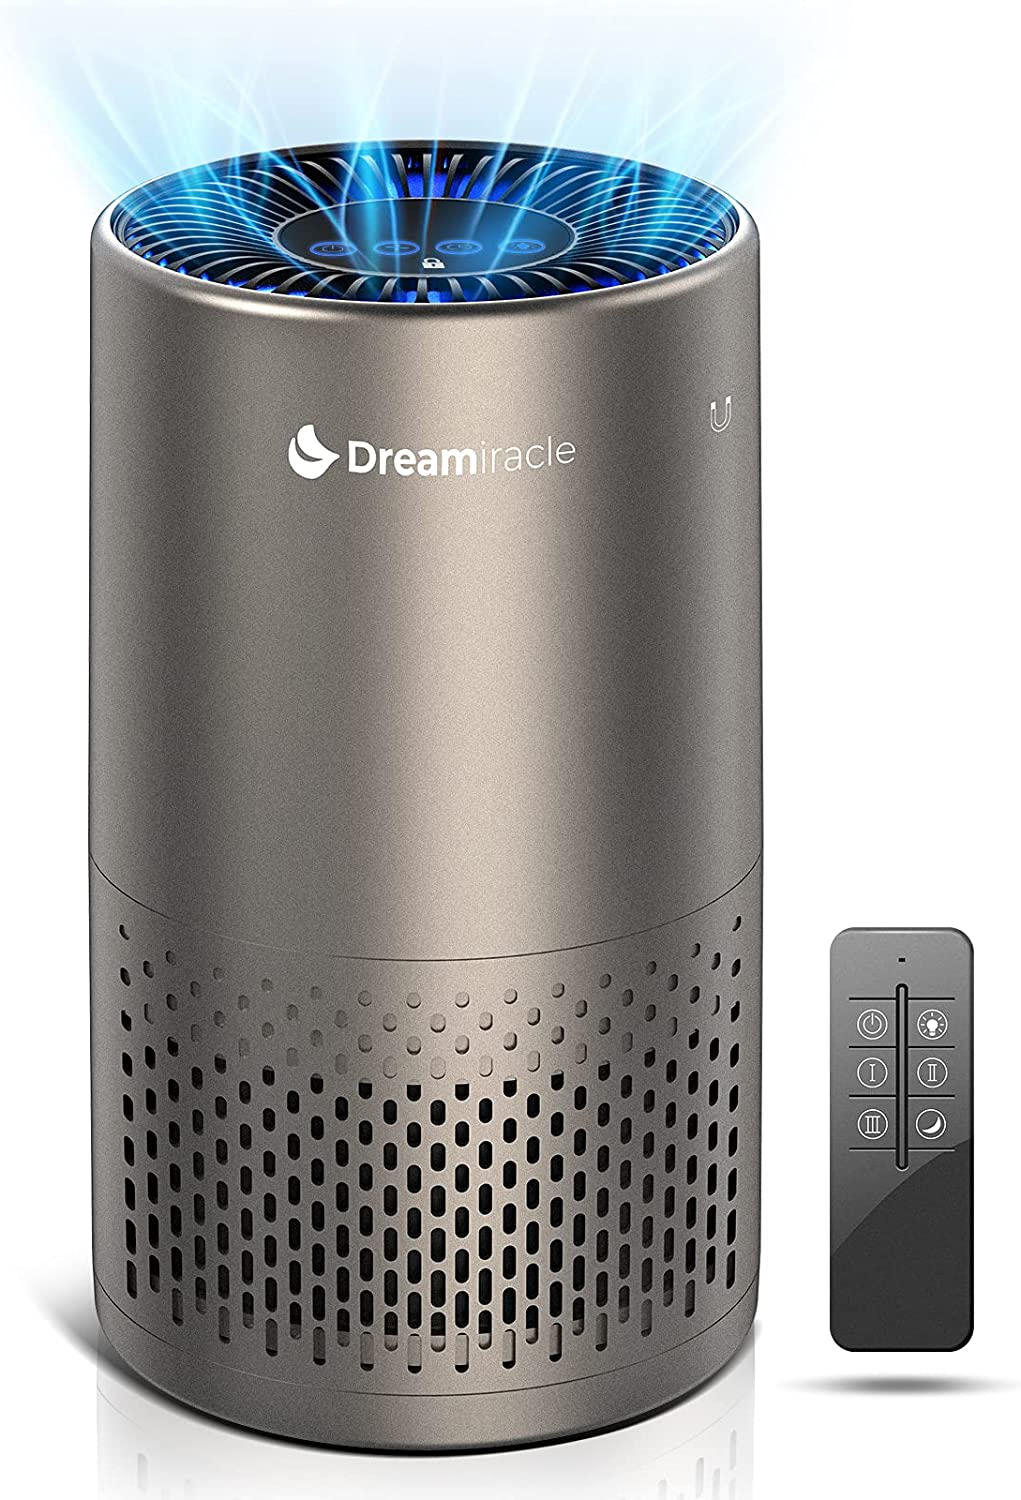 Dreamiracle  4-Stage H13 True HEPA Air Purifier $64.99 Coupon